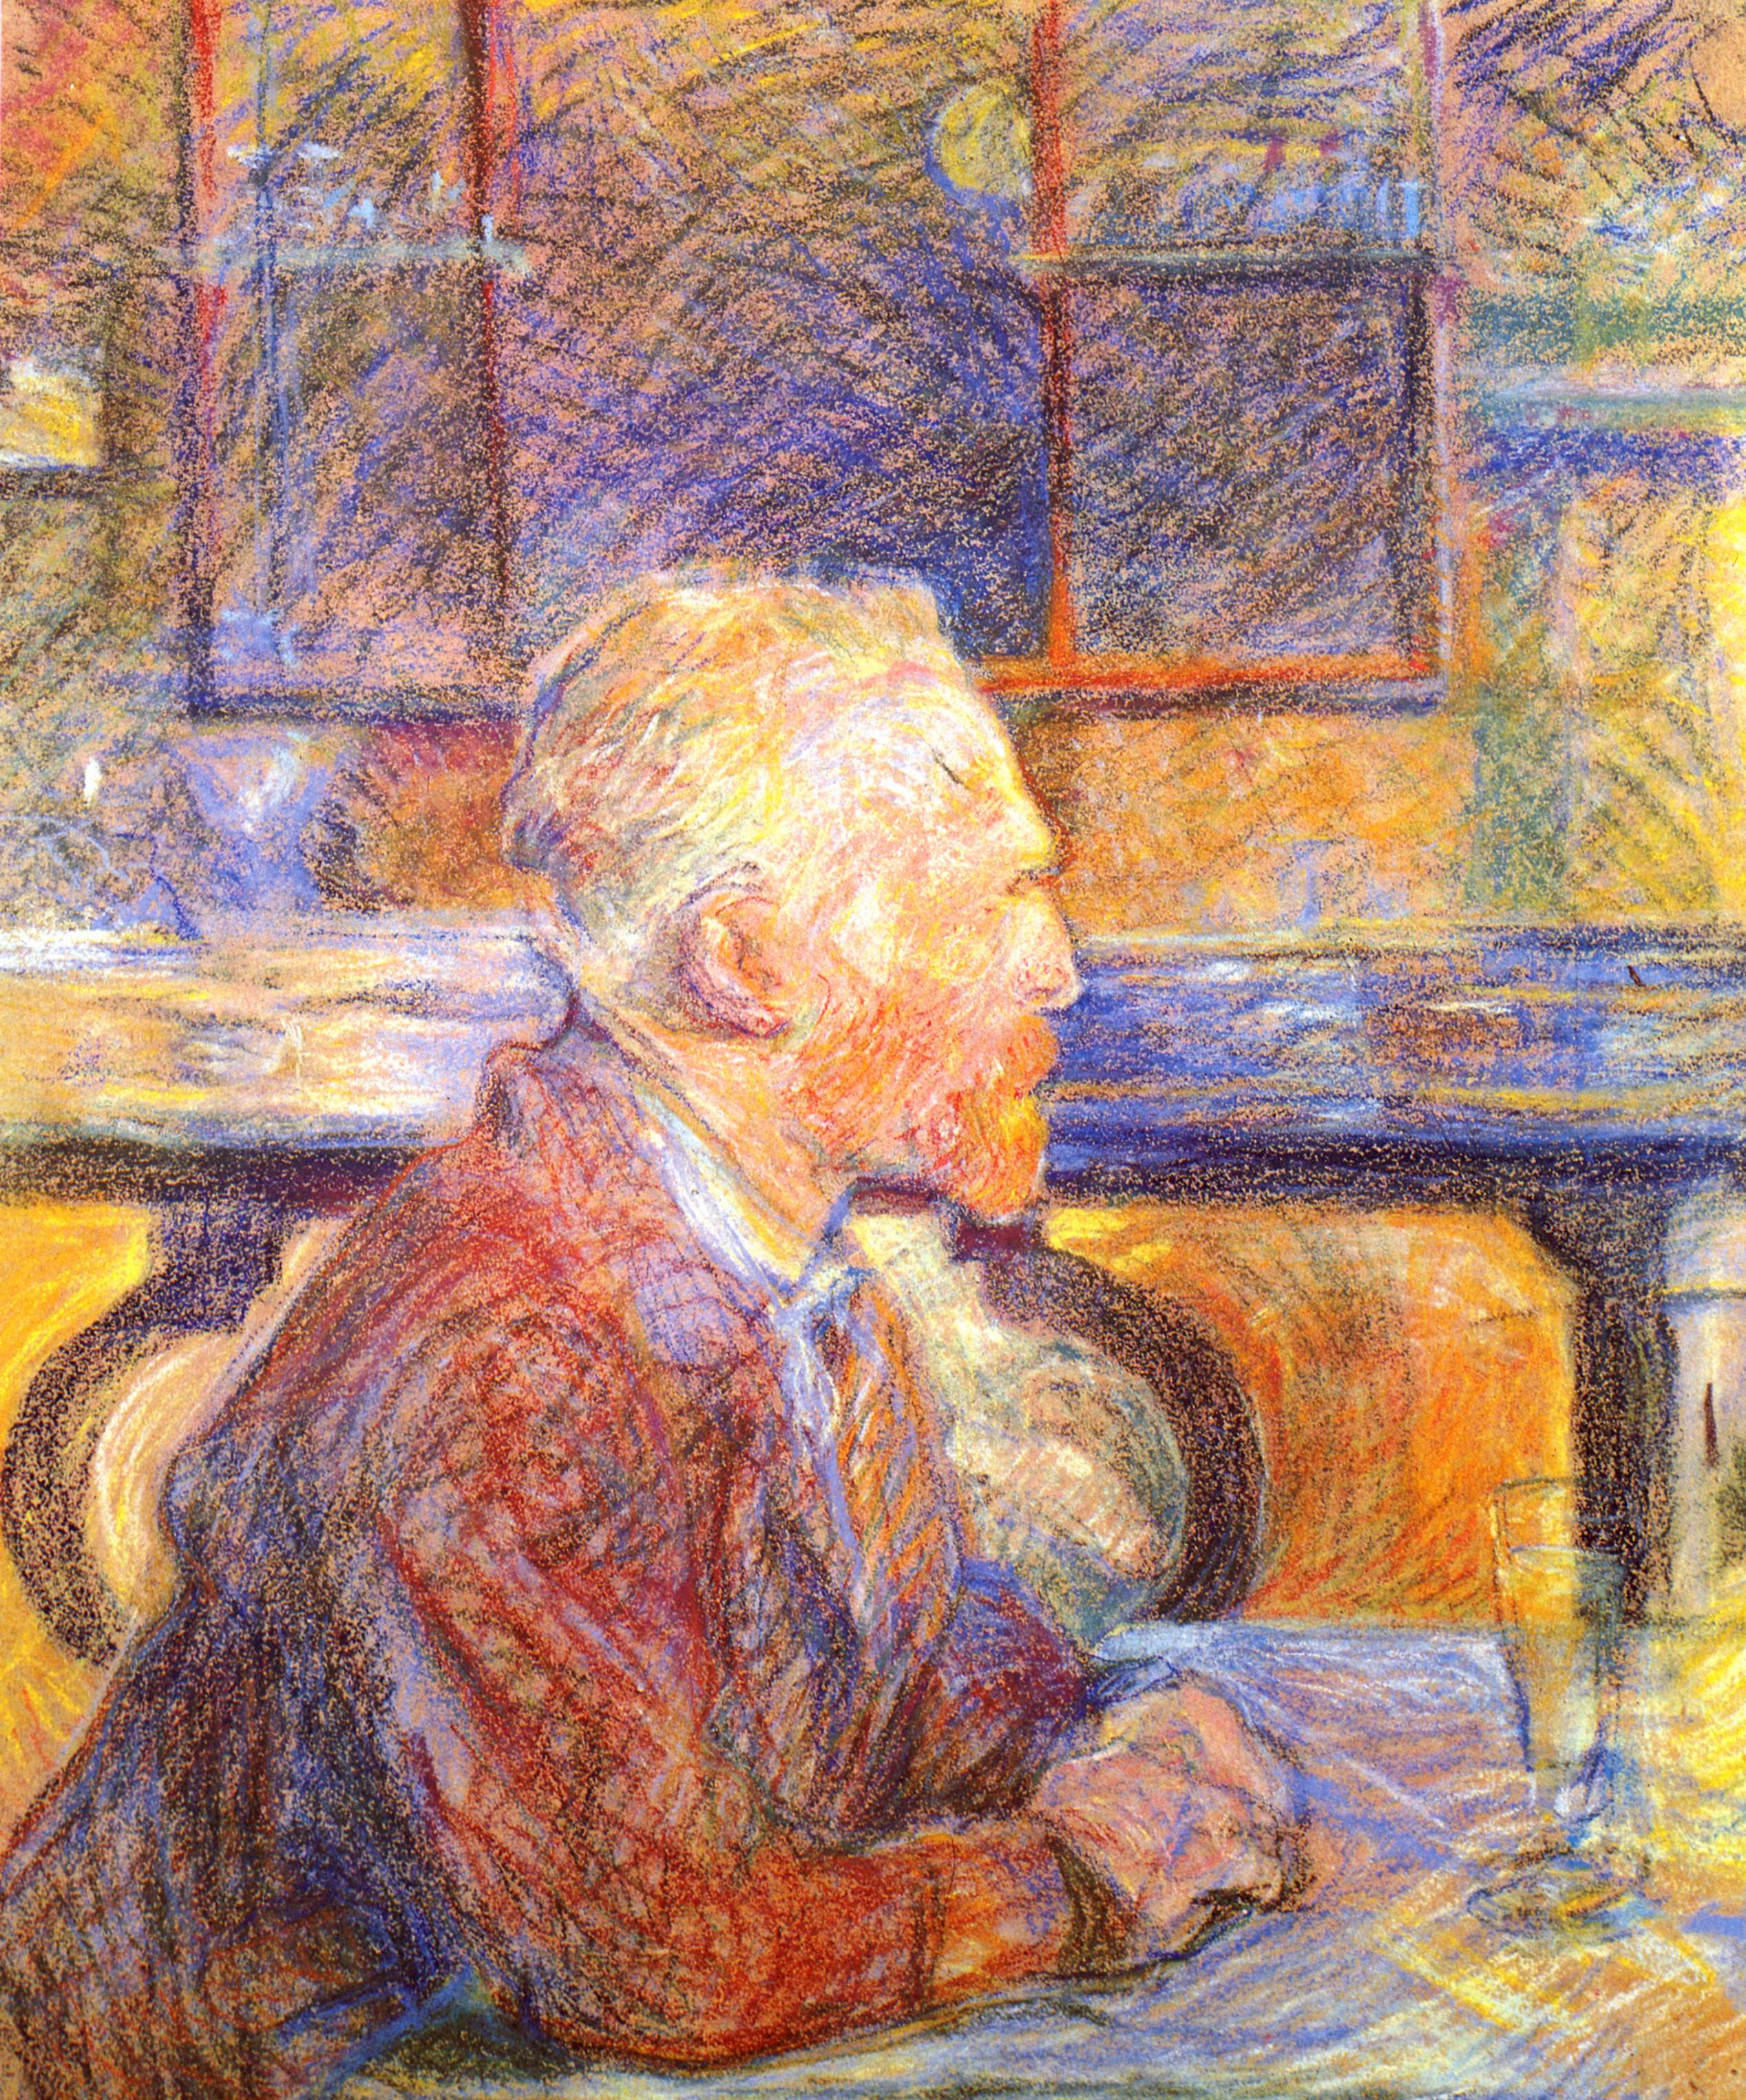 blue-hued pastel drawing of a man facing right, seated at a table with his hands and a glass on it while wearing a coat and with windows in the background.